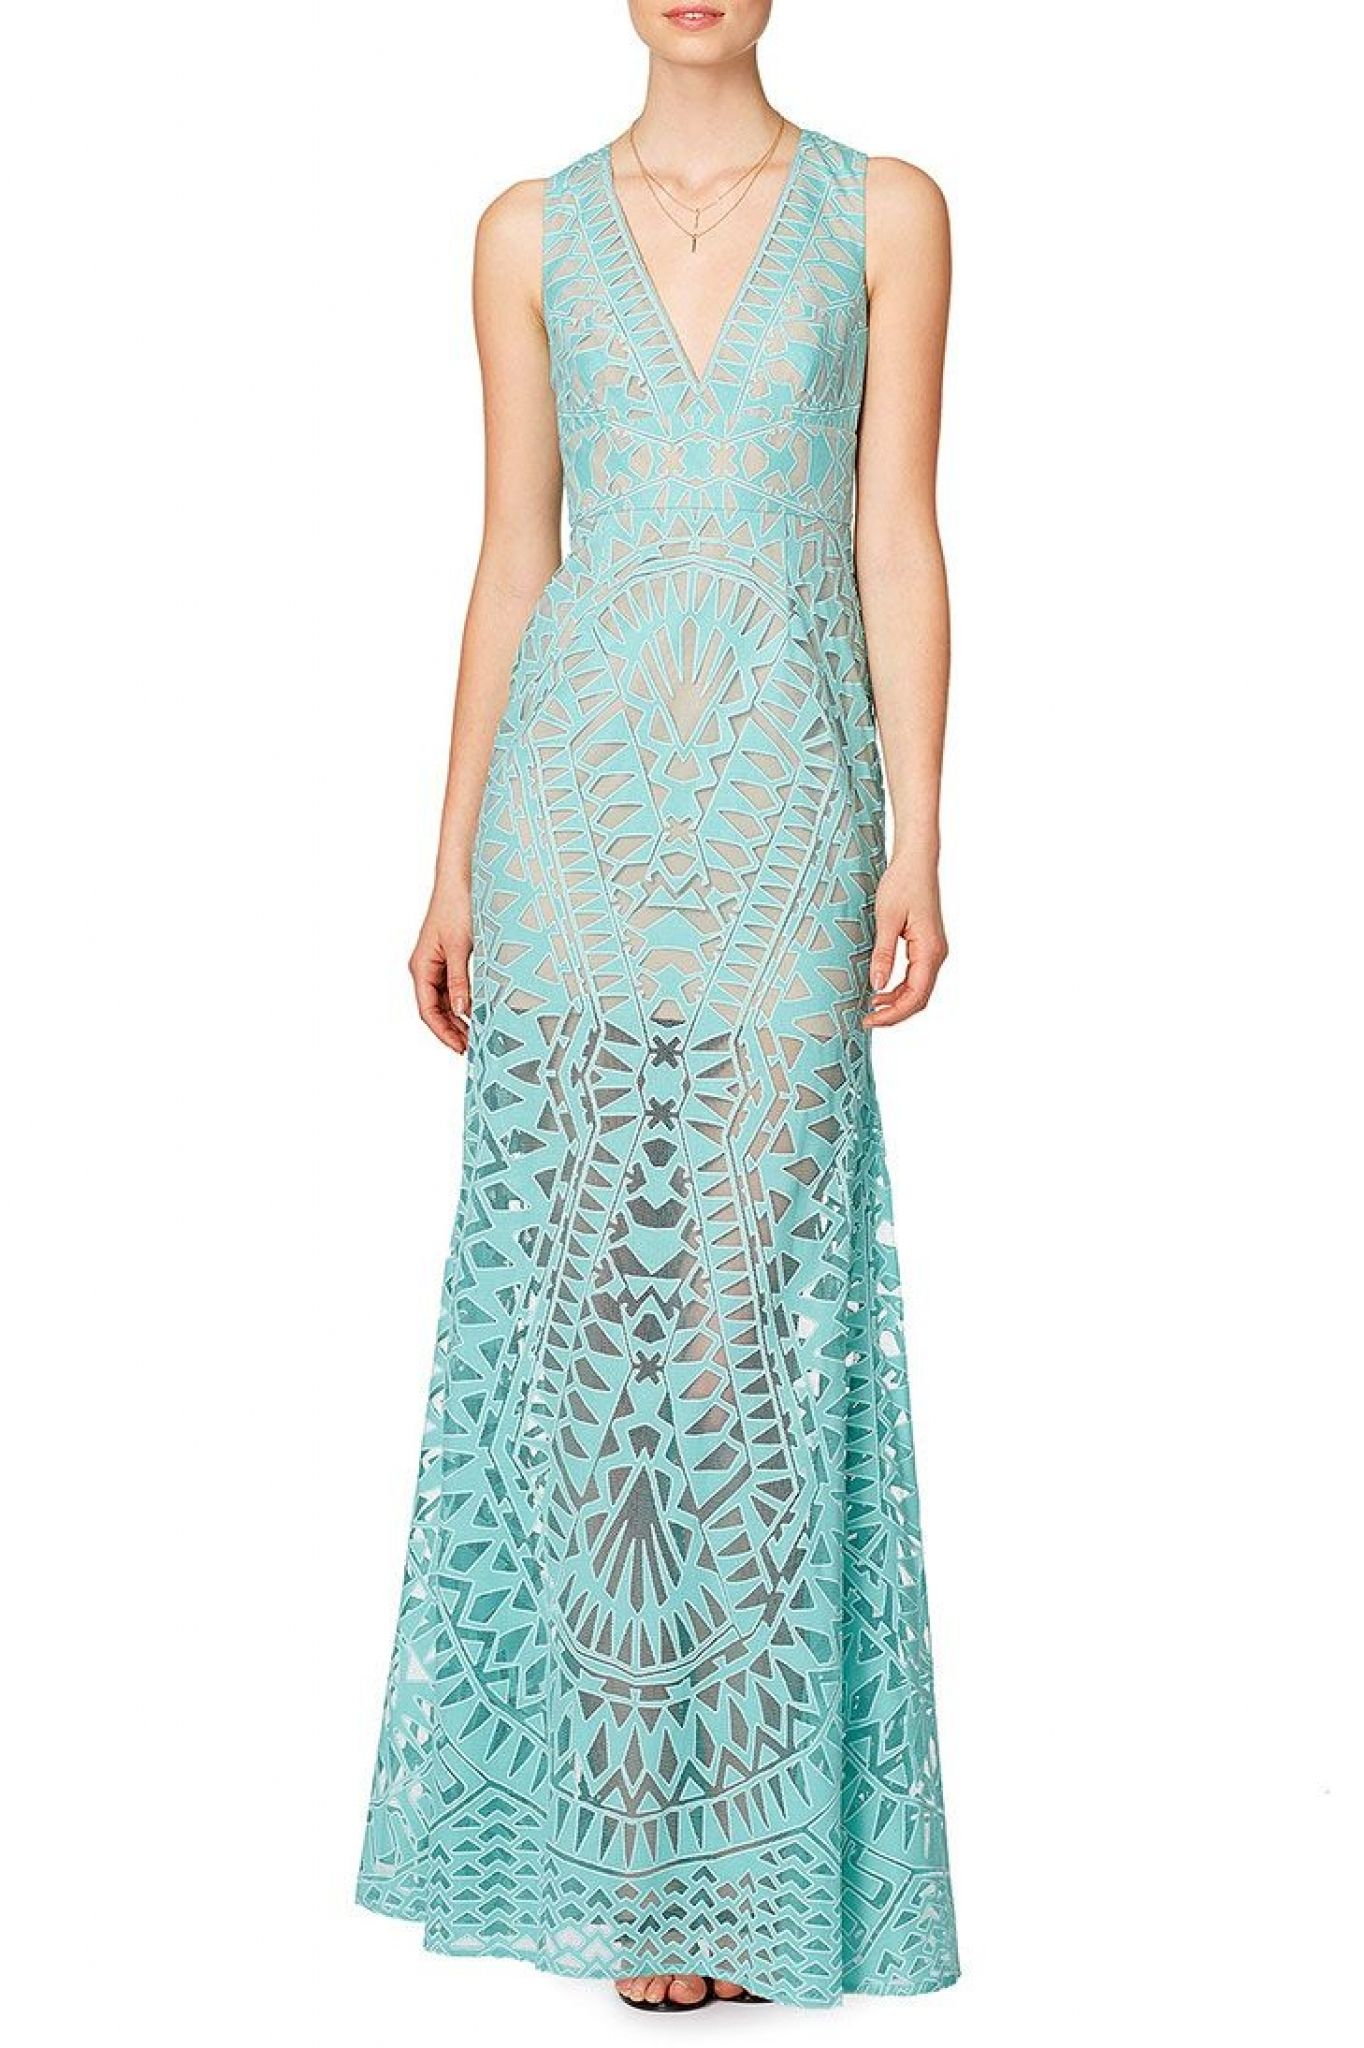 Wedding dresses guest  dresses to wear to a beach wedding  plus size dresses for wedding